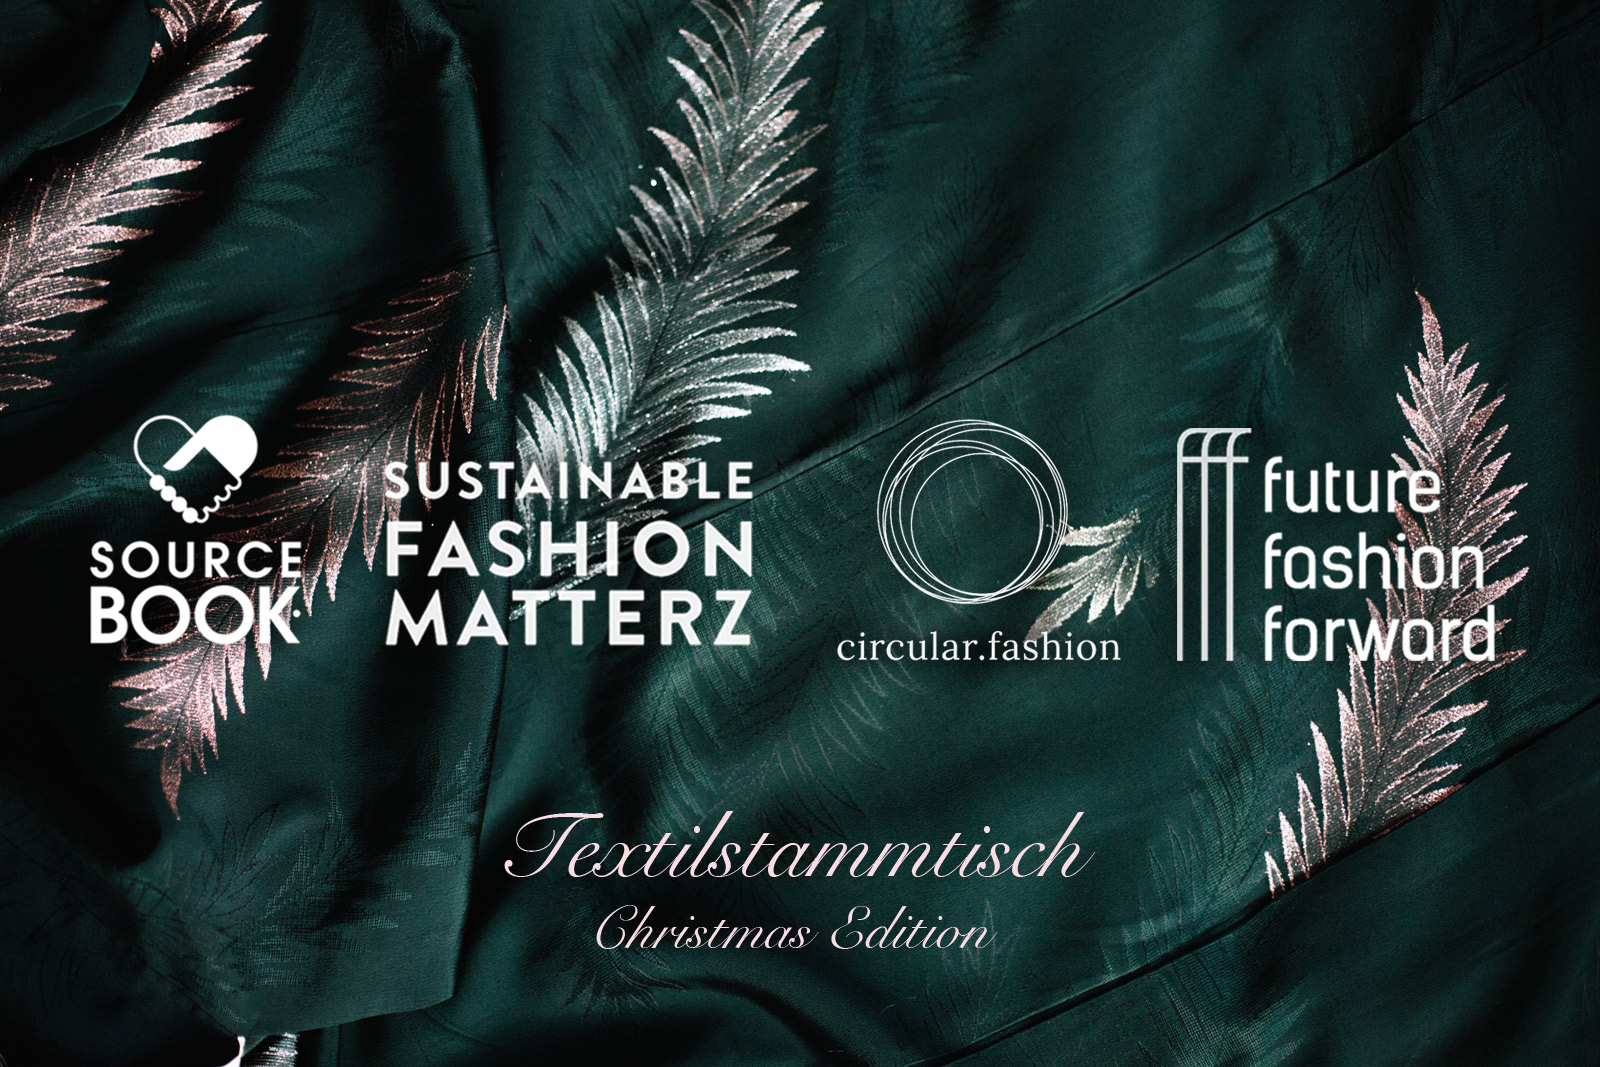 sustainable-fashion-events-berlin.jpg